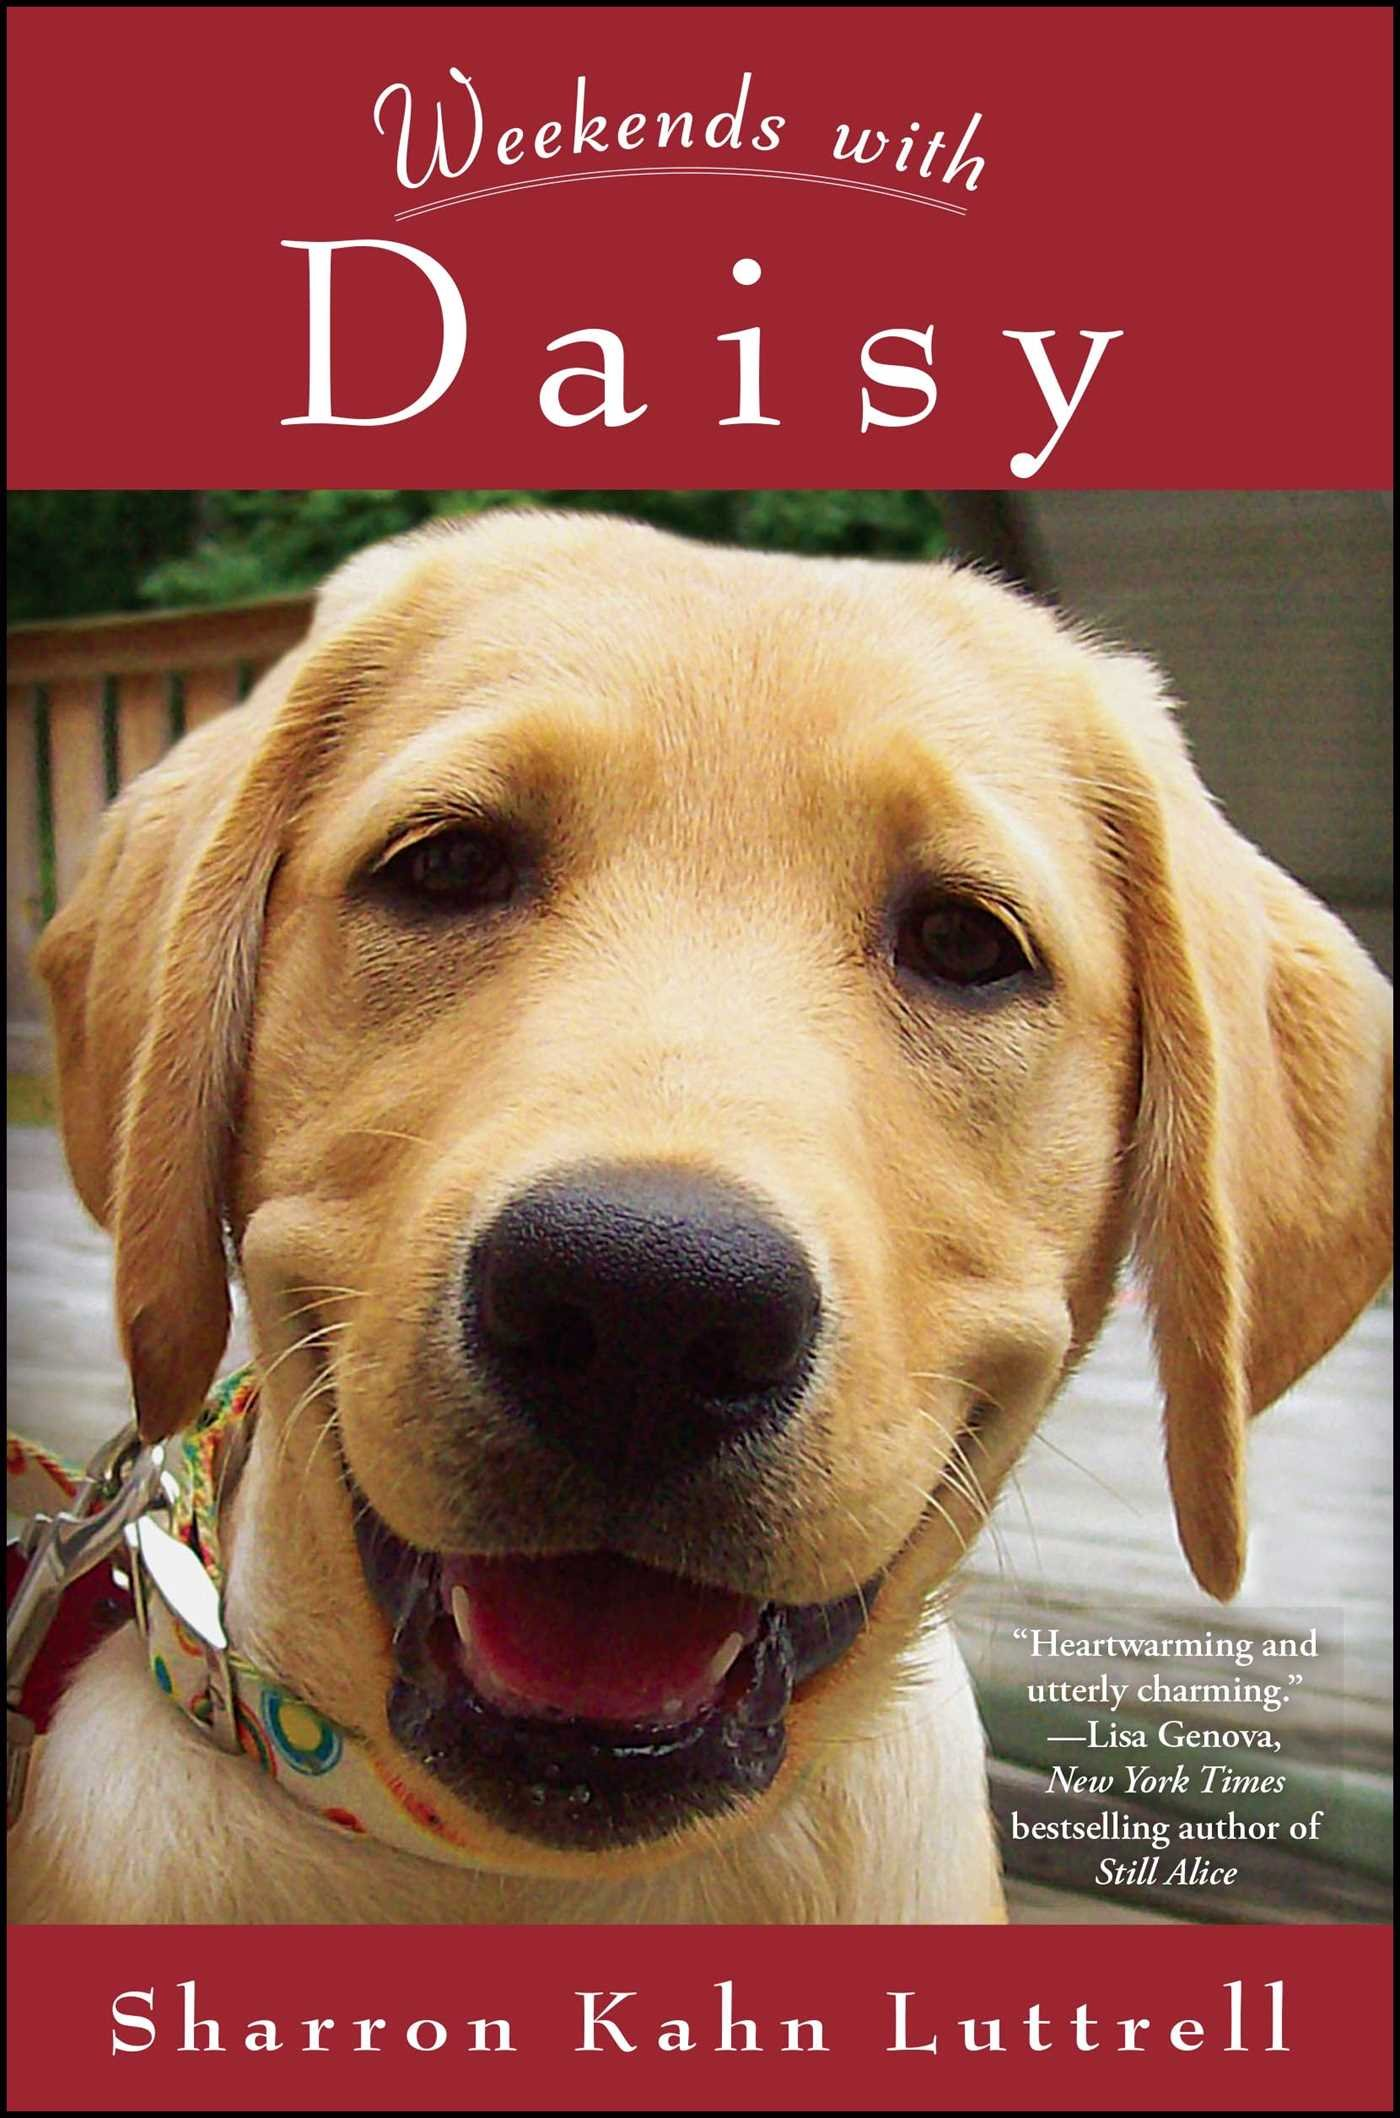 Weekends with Daisy: Sharron Kahn Luttrell: 9781451686258: Amazon.com: Books